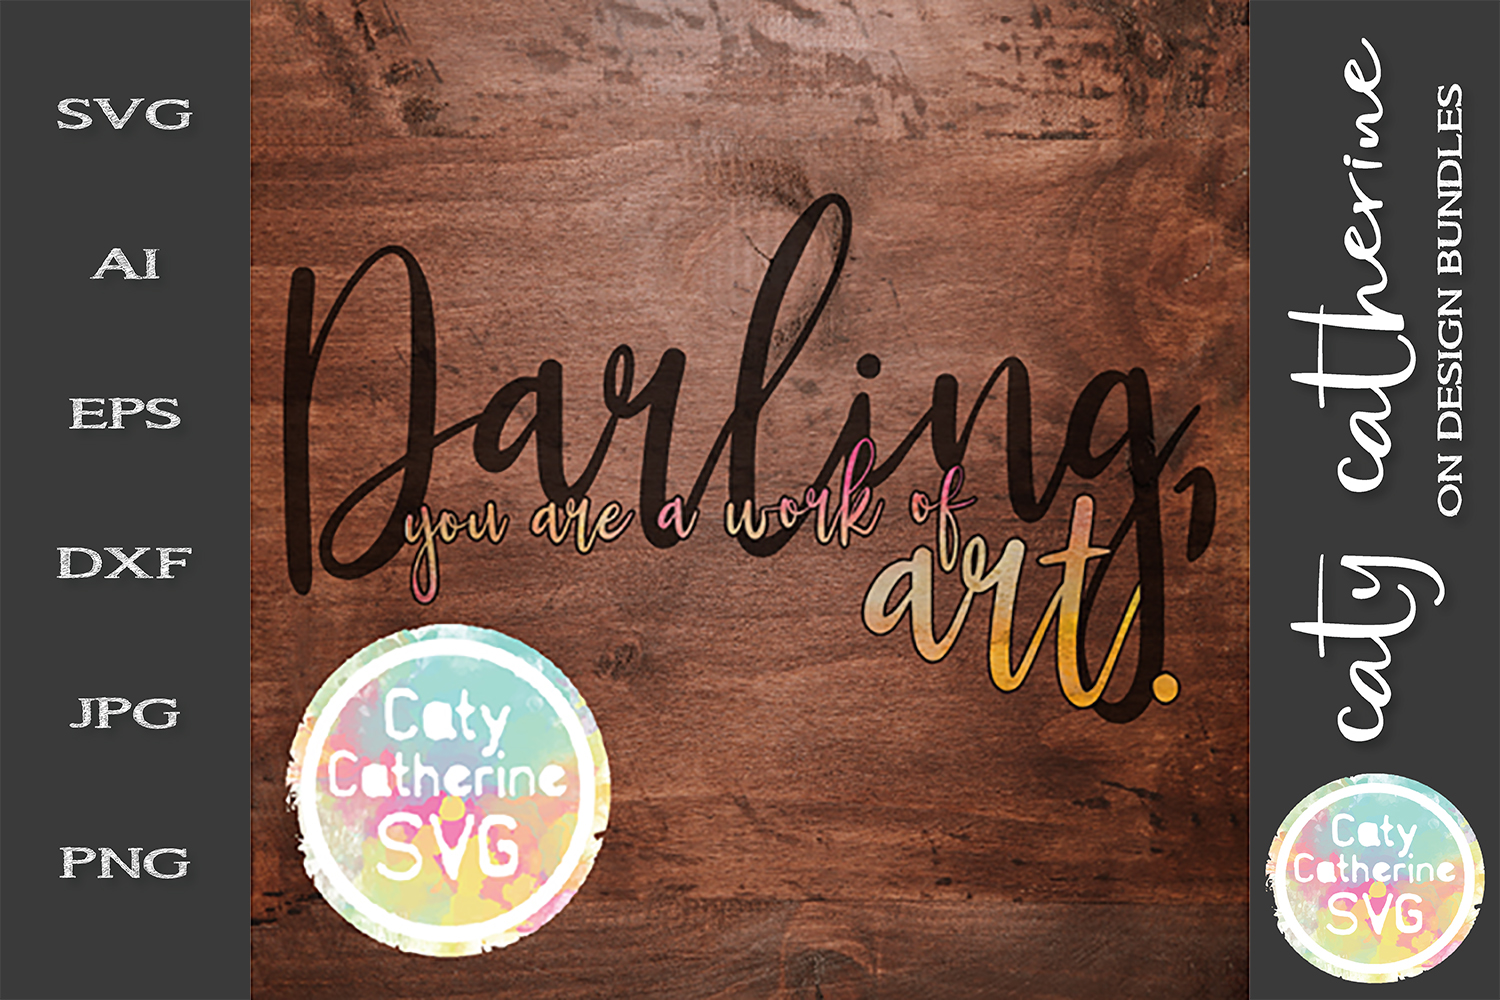 Darling, You Are A Work Of Art SVG Cut File example image 1